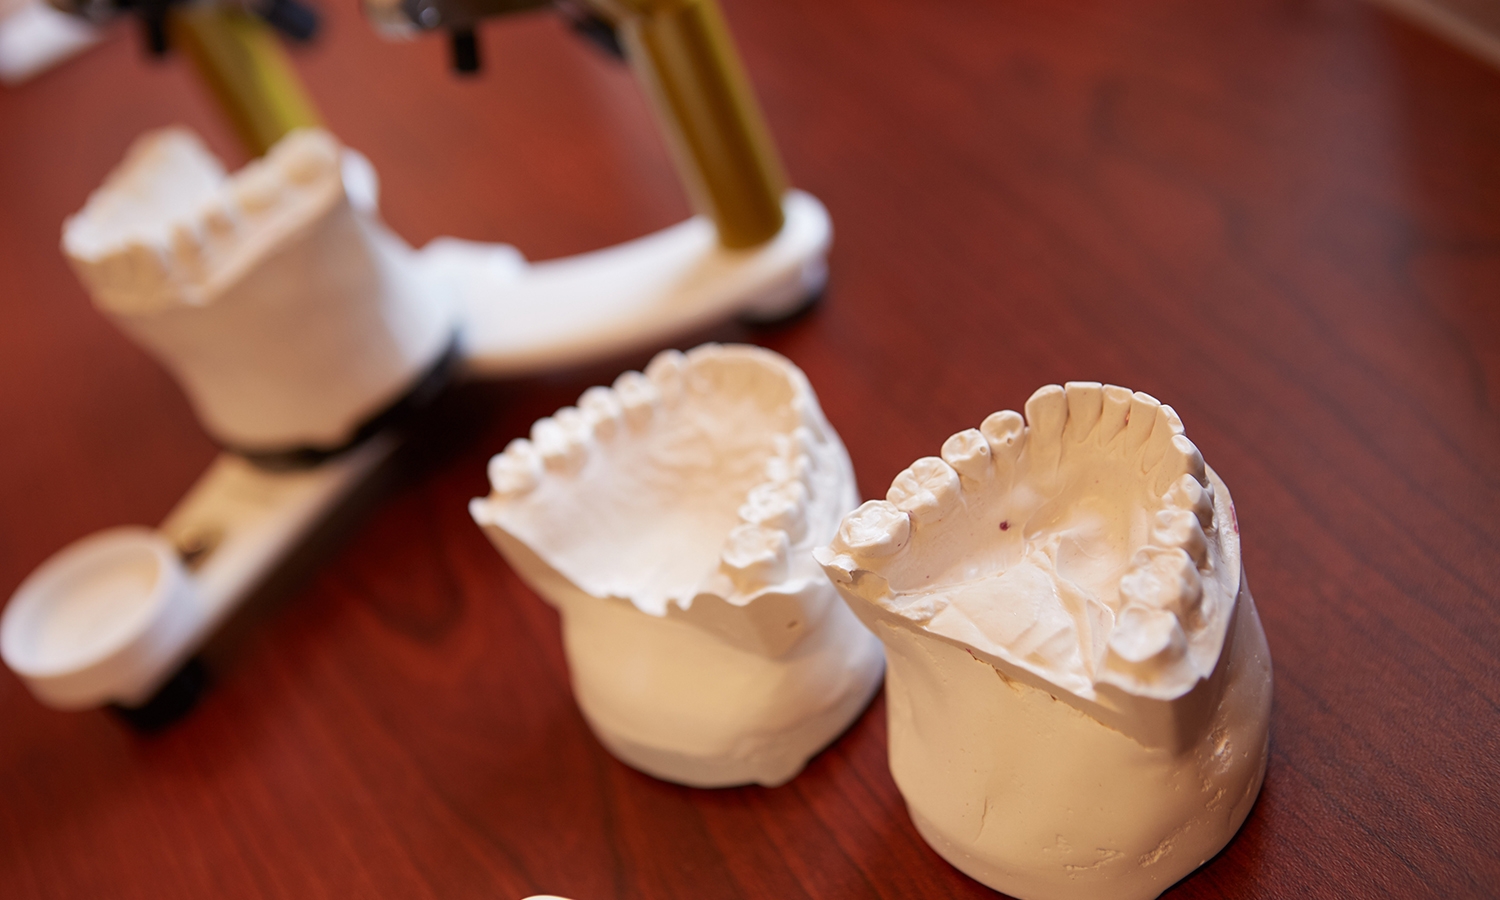 Dental impressions in Grandville MI at Klein Dentistry - KleinDentistry.com